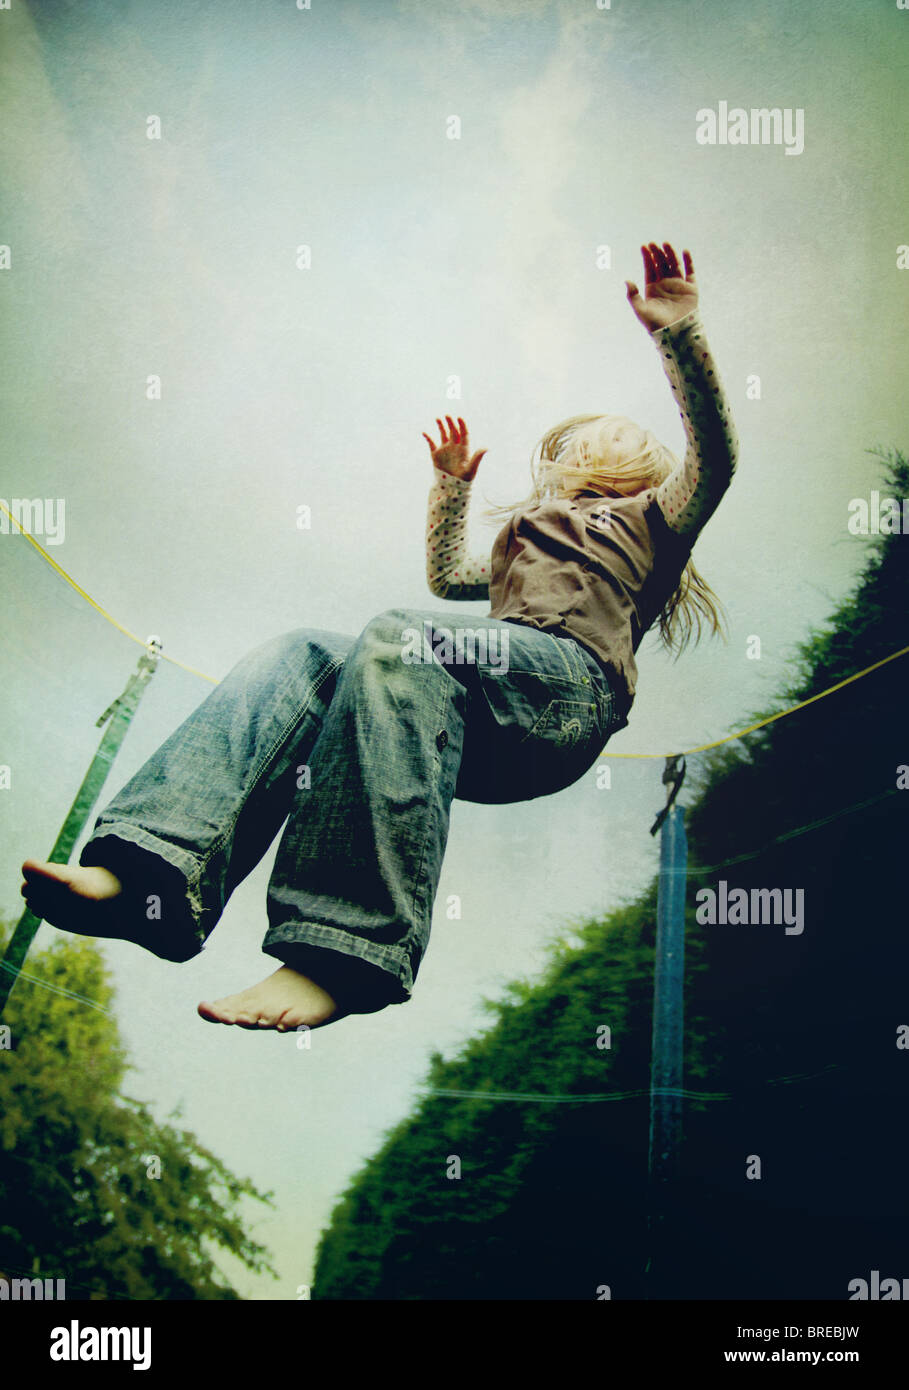 Fille sautant sur un trampoline Photo Stock